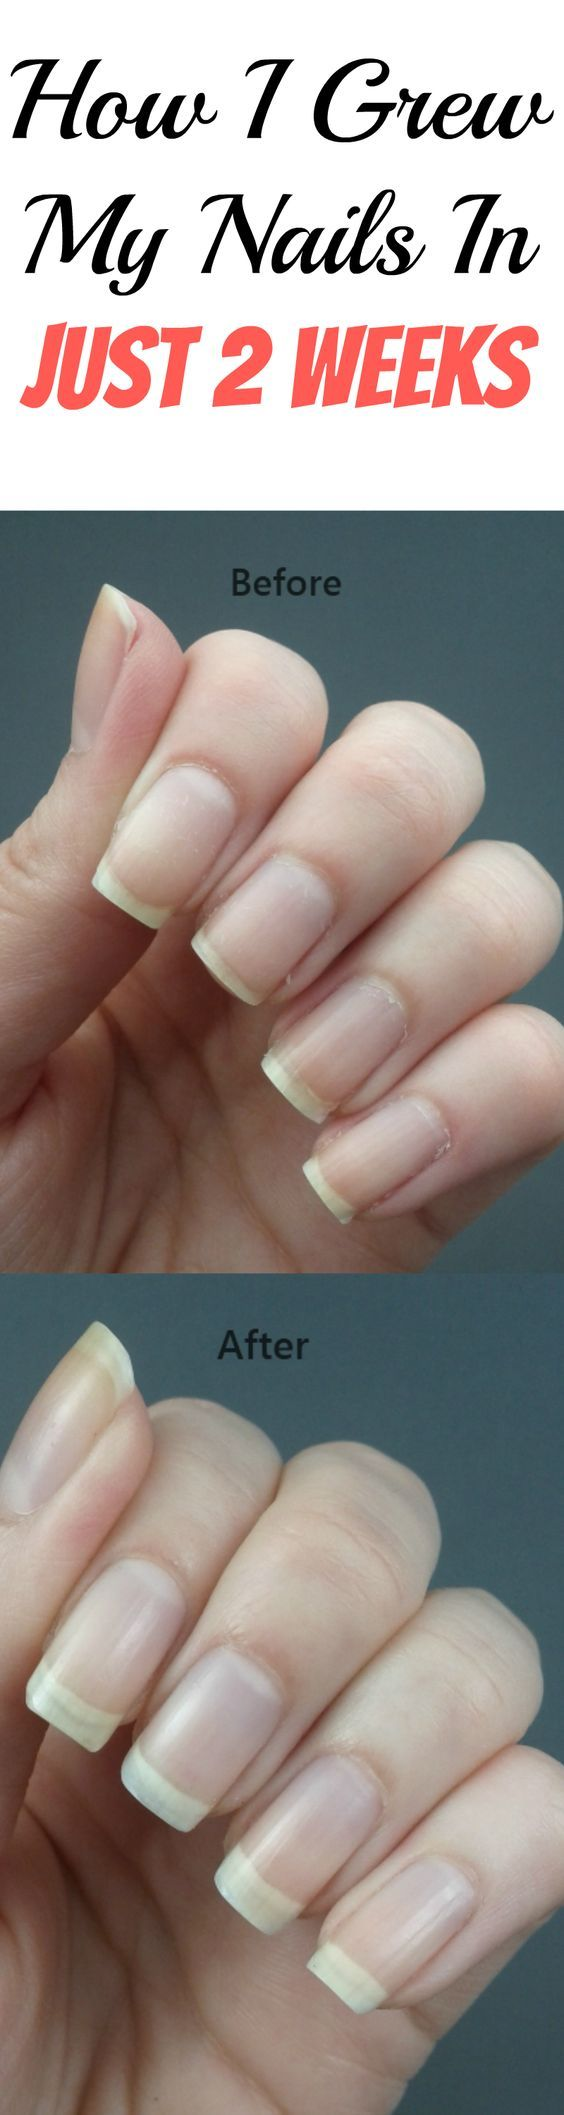 How I Grew My Nails In Just 2 Weeks | Nail problems, Grow nails fast ...